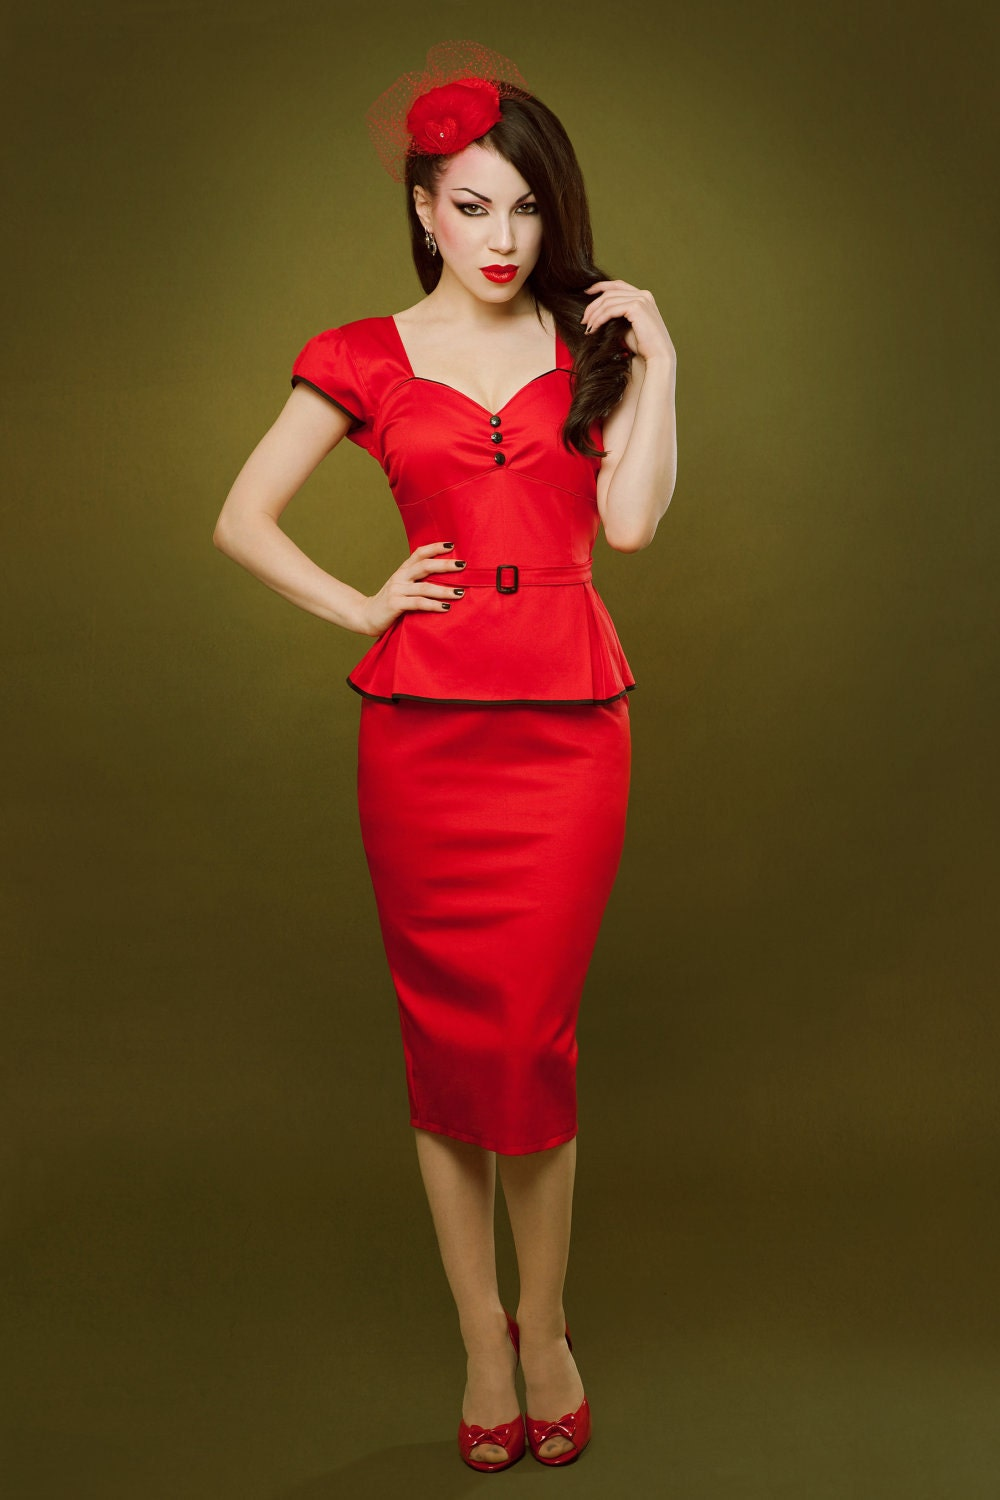 Pin By Jonika Tarot On Totally Tarot Group Board: Pin Up Rockabilly Red Peplum Dress By Hola Chica Clothing